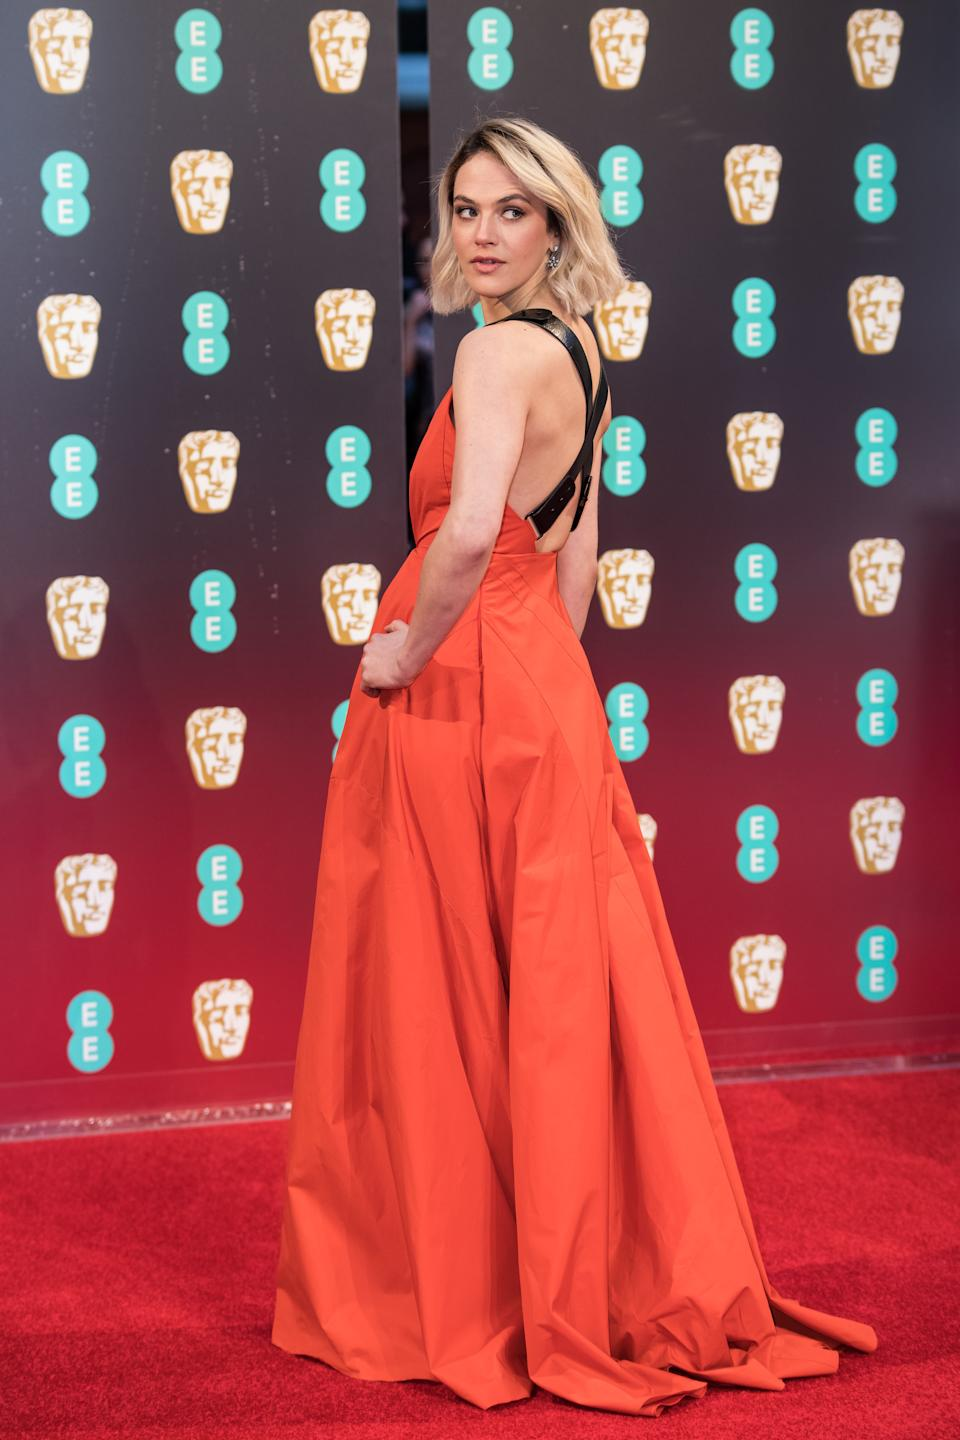 Jessica Brown Findlay poses for photographers upon arrival at the BAFTA Film Awards, in London, Sunday, Feb. 12, 2017. (Photo by Vianney Le Caer/Invision/AP)